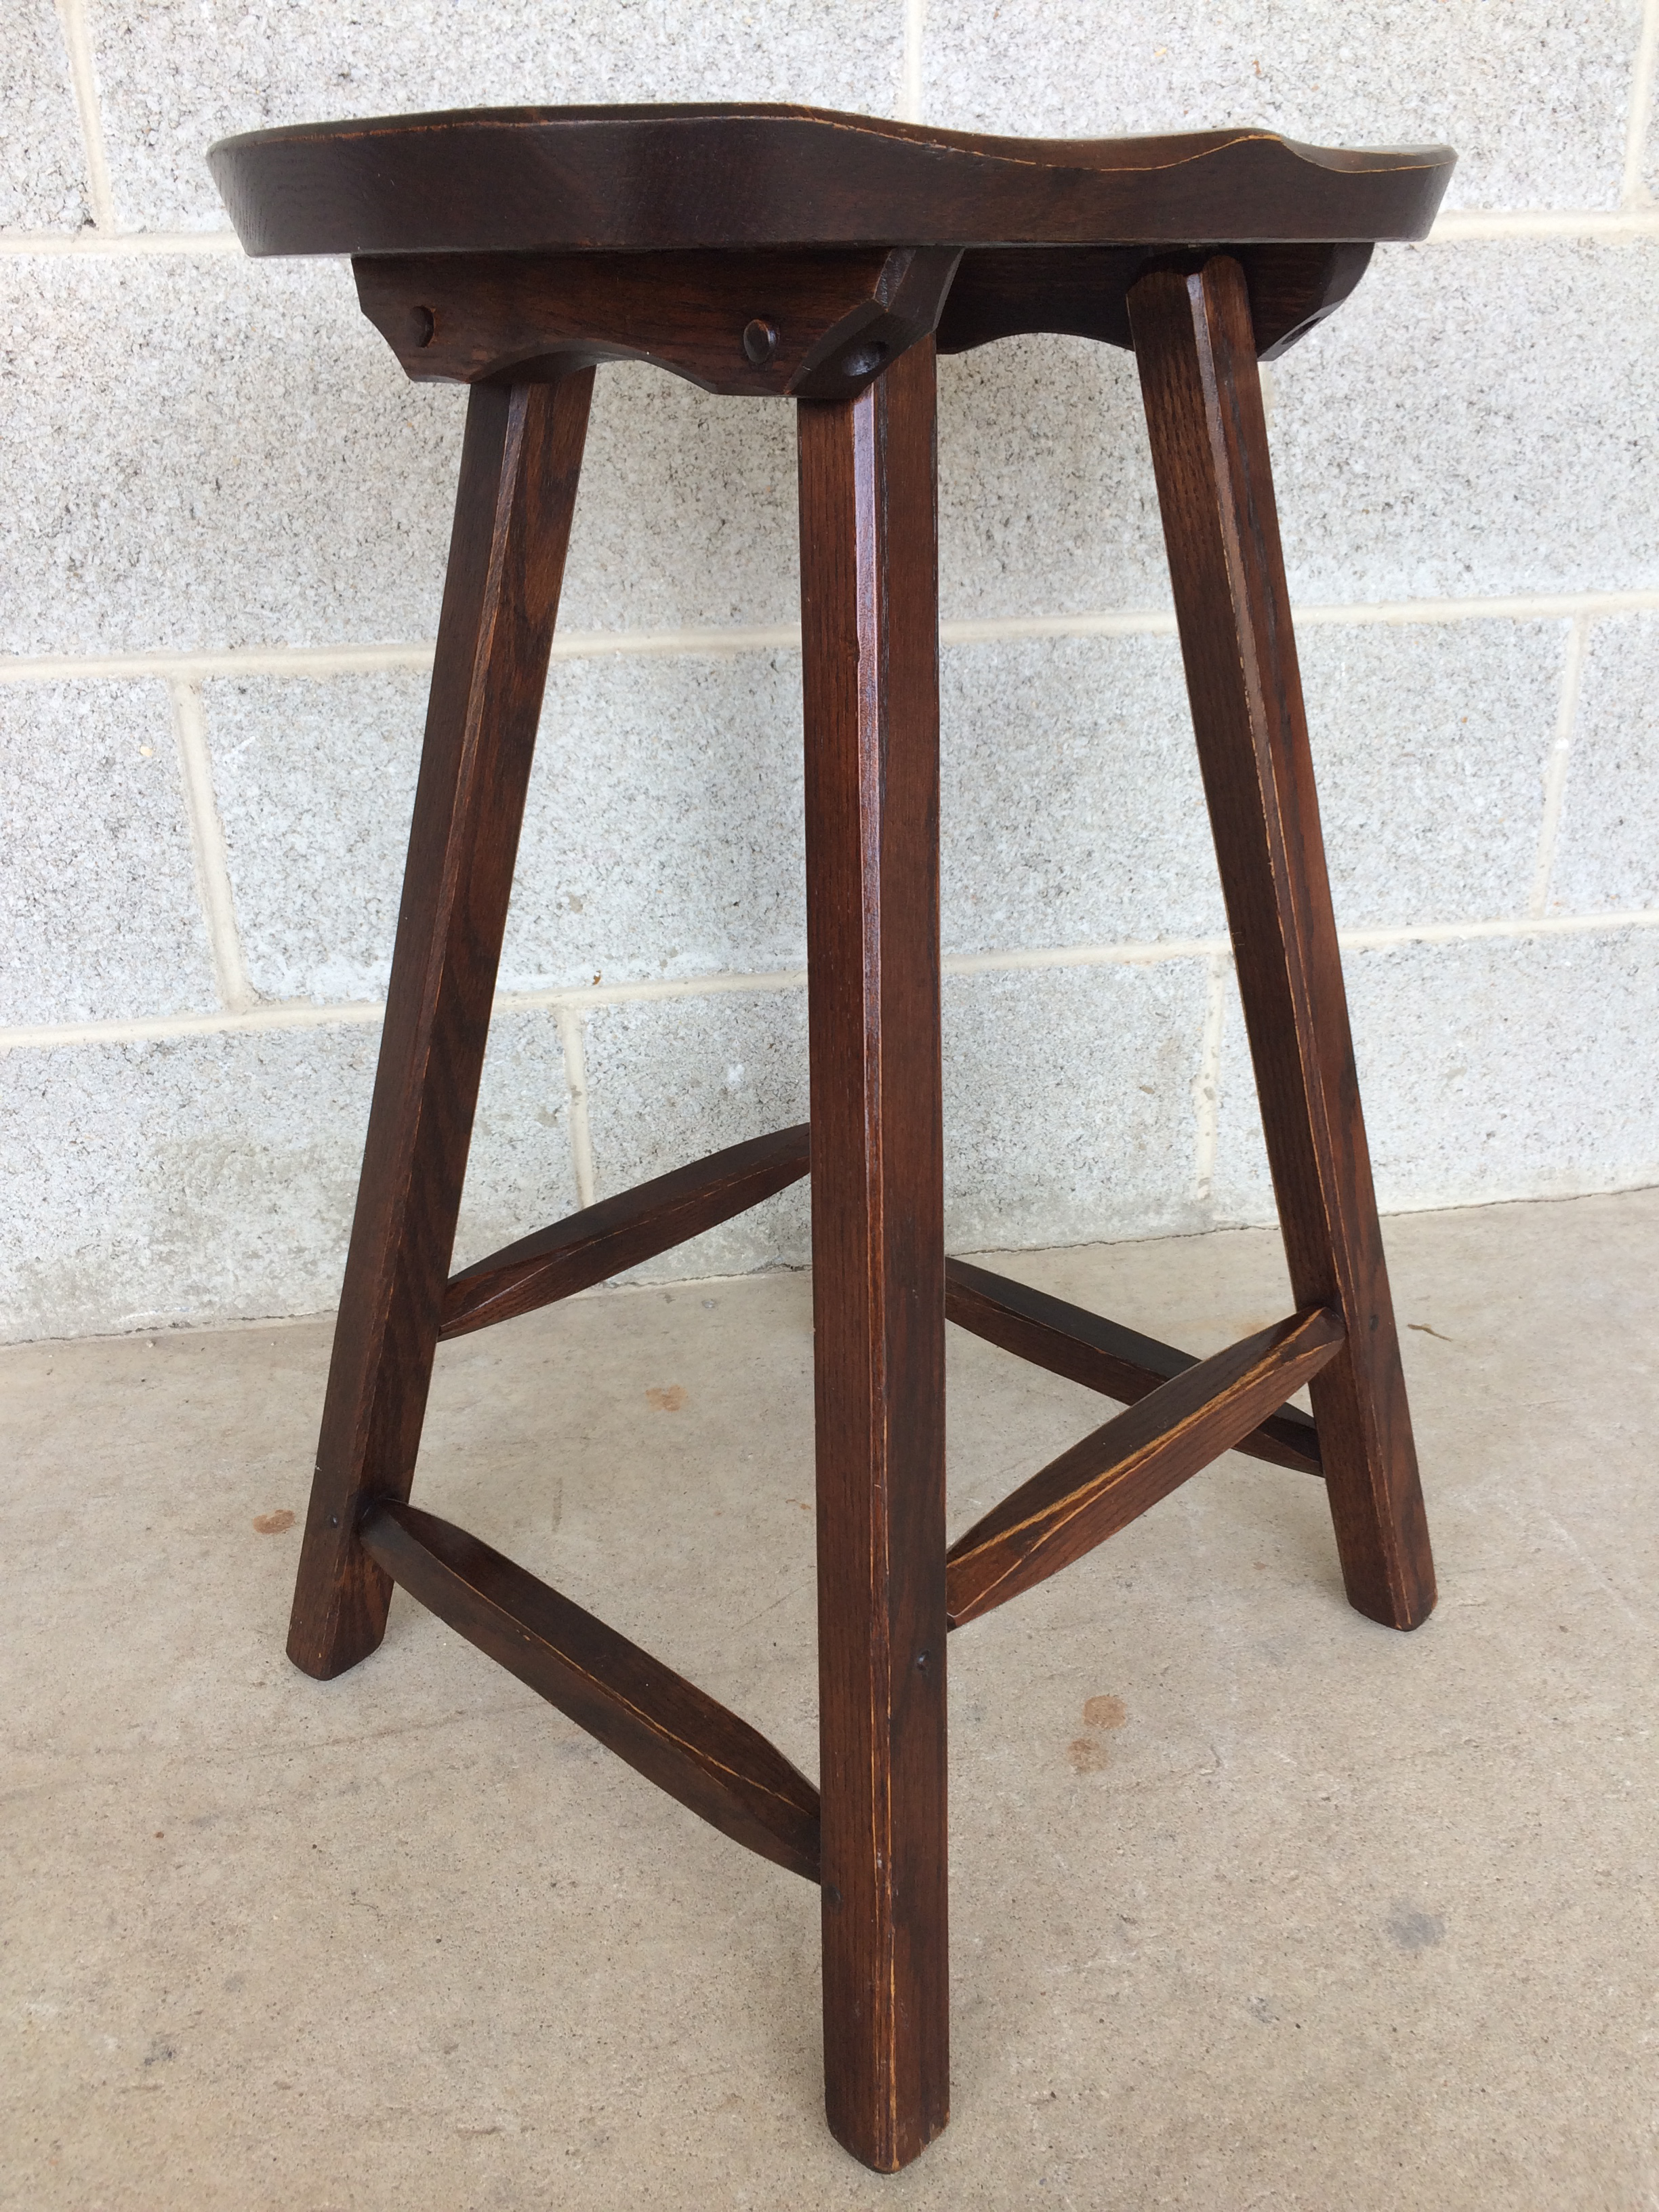 Hunt Country Furniture Counter Stools Set of 3 Chairish : hunt country furniture counter stools set of 3 3714aspectfitampwidth640ampheight640 from www.chairish.com size 640 x 640 jpeg 56kB